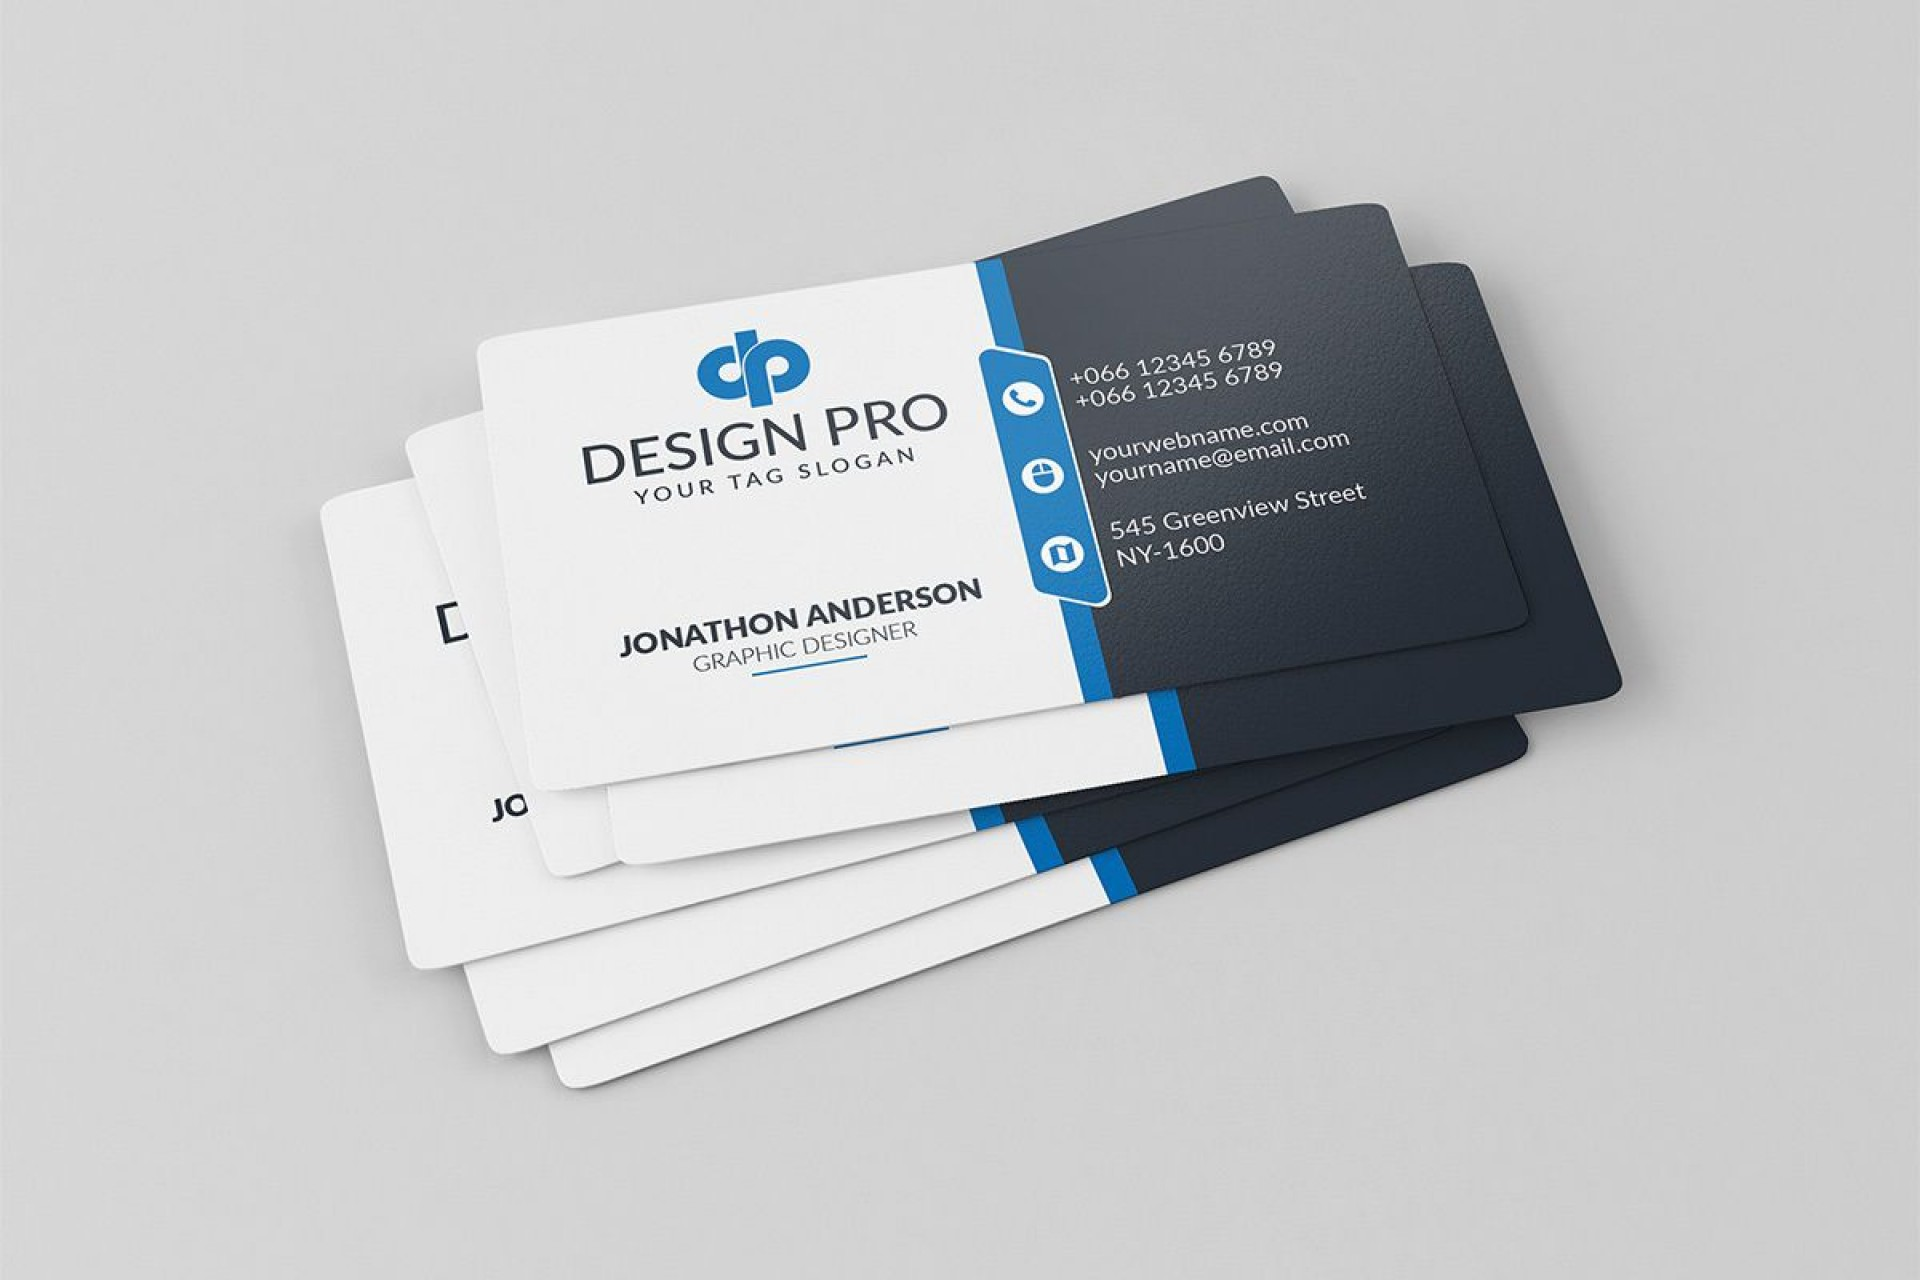 002 Simple Free Adobe Photoshop Busines Card Template Highest Clarity  Templates Download1920